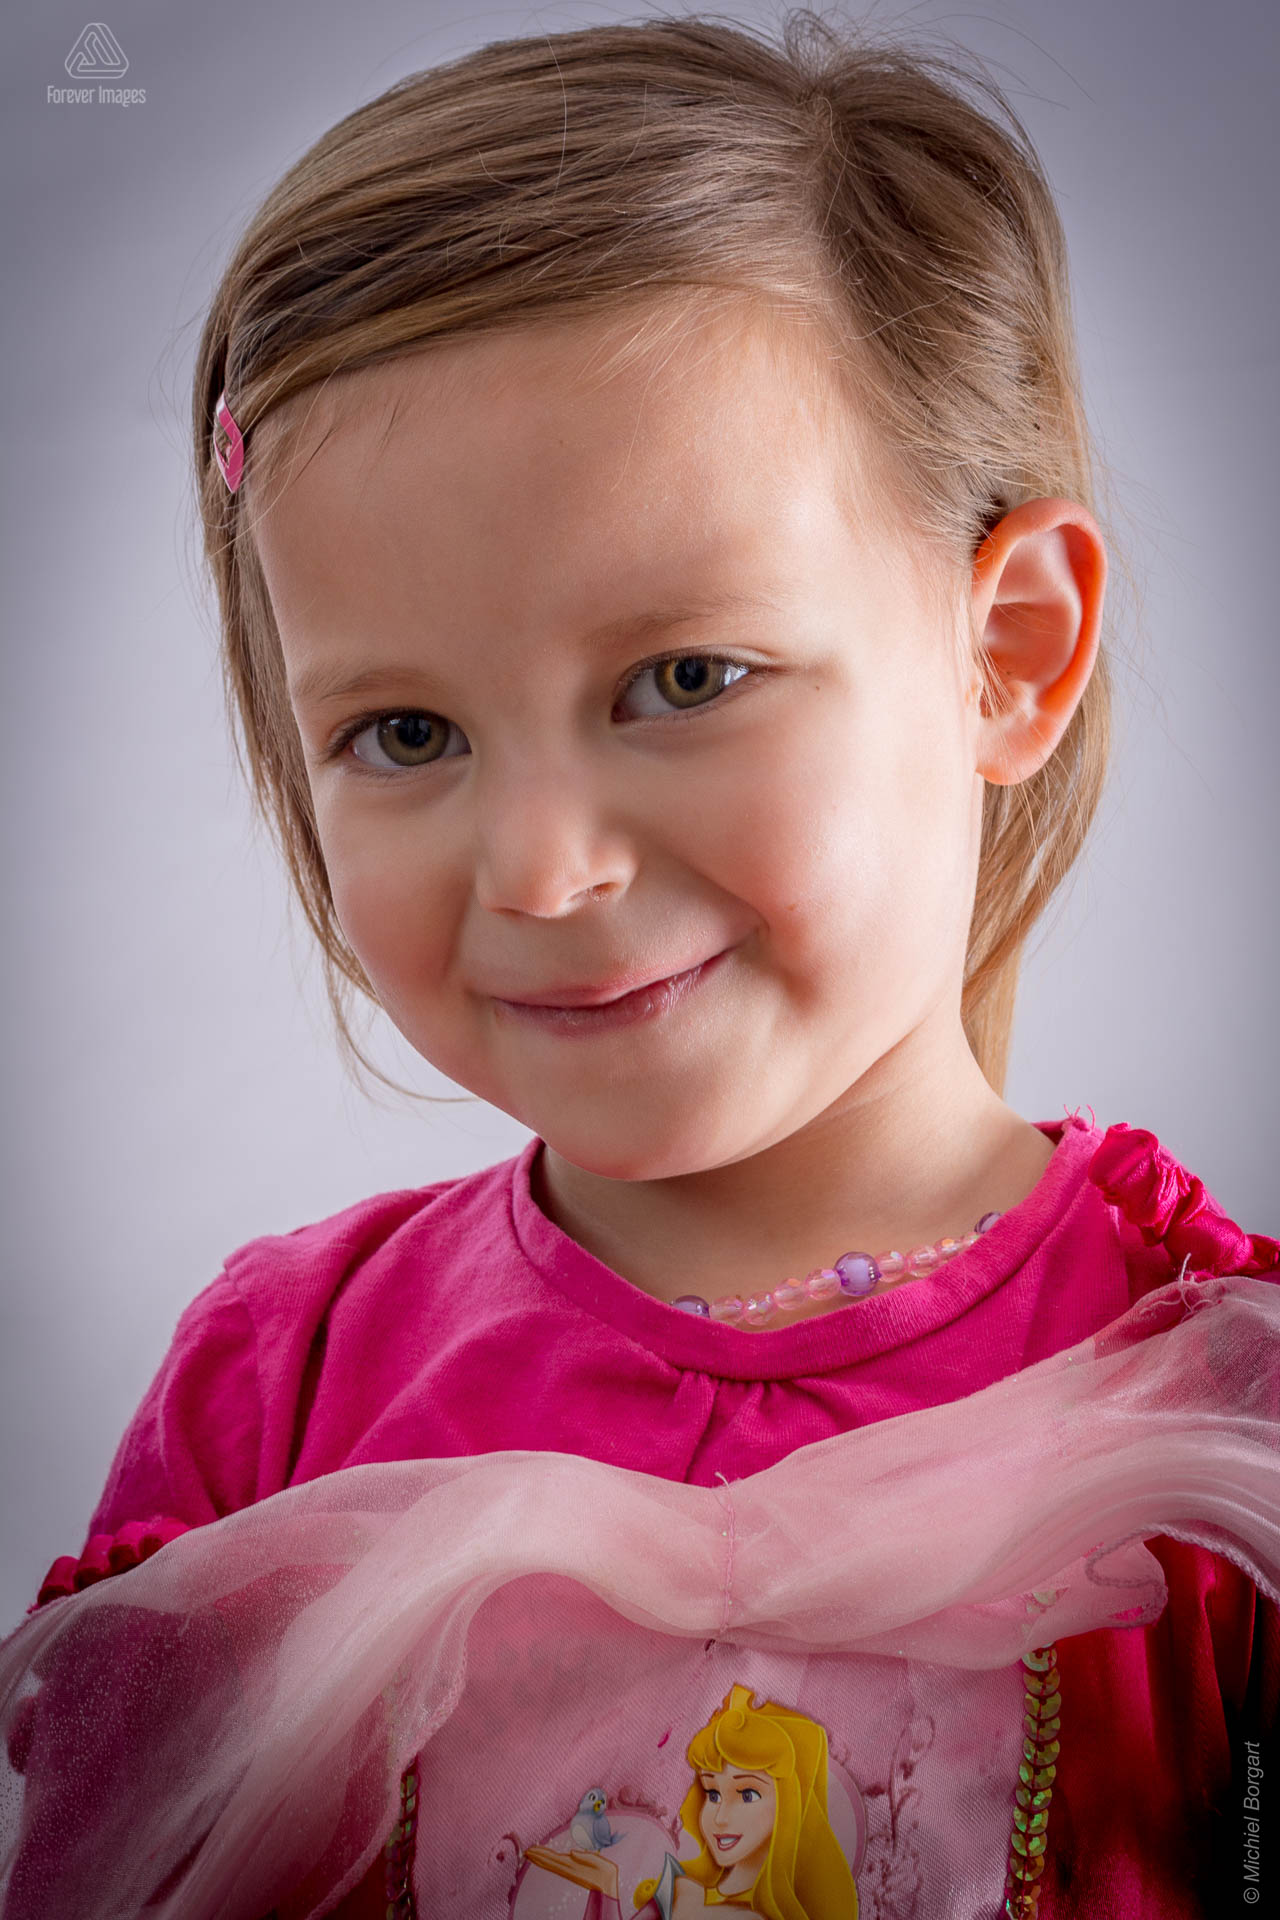 Child photo of a young girl in a pink princess dress | Gianessa | Portrait Photographer Michiel Borgart - Forever Images.